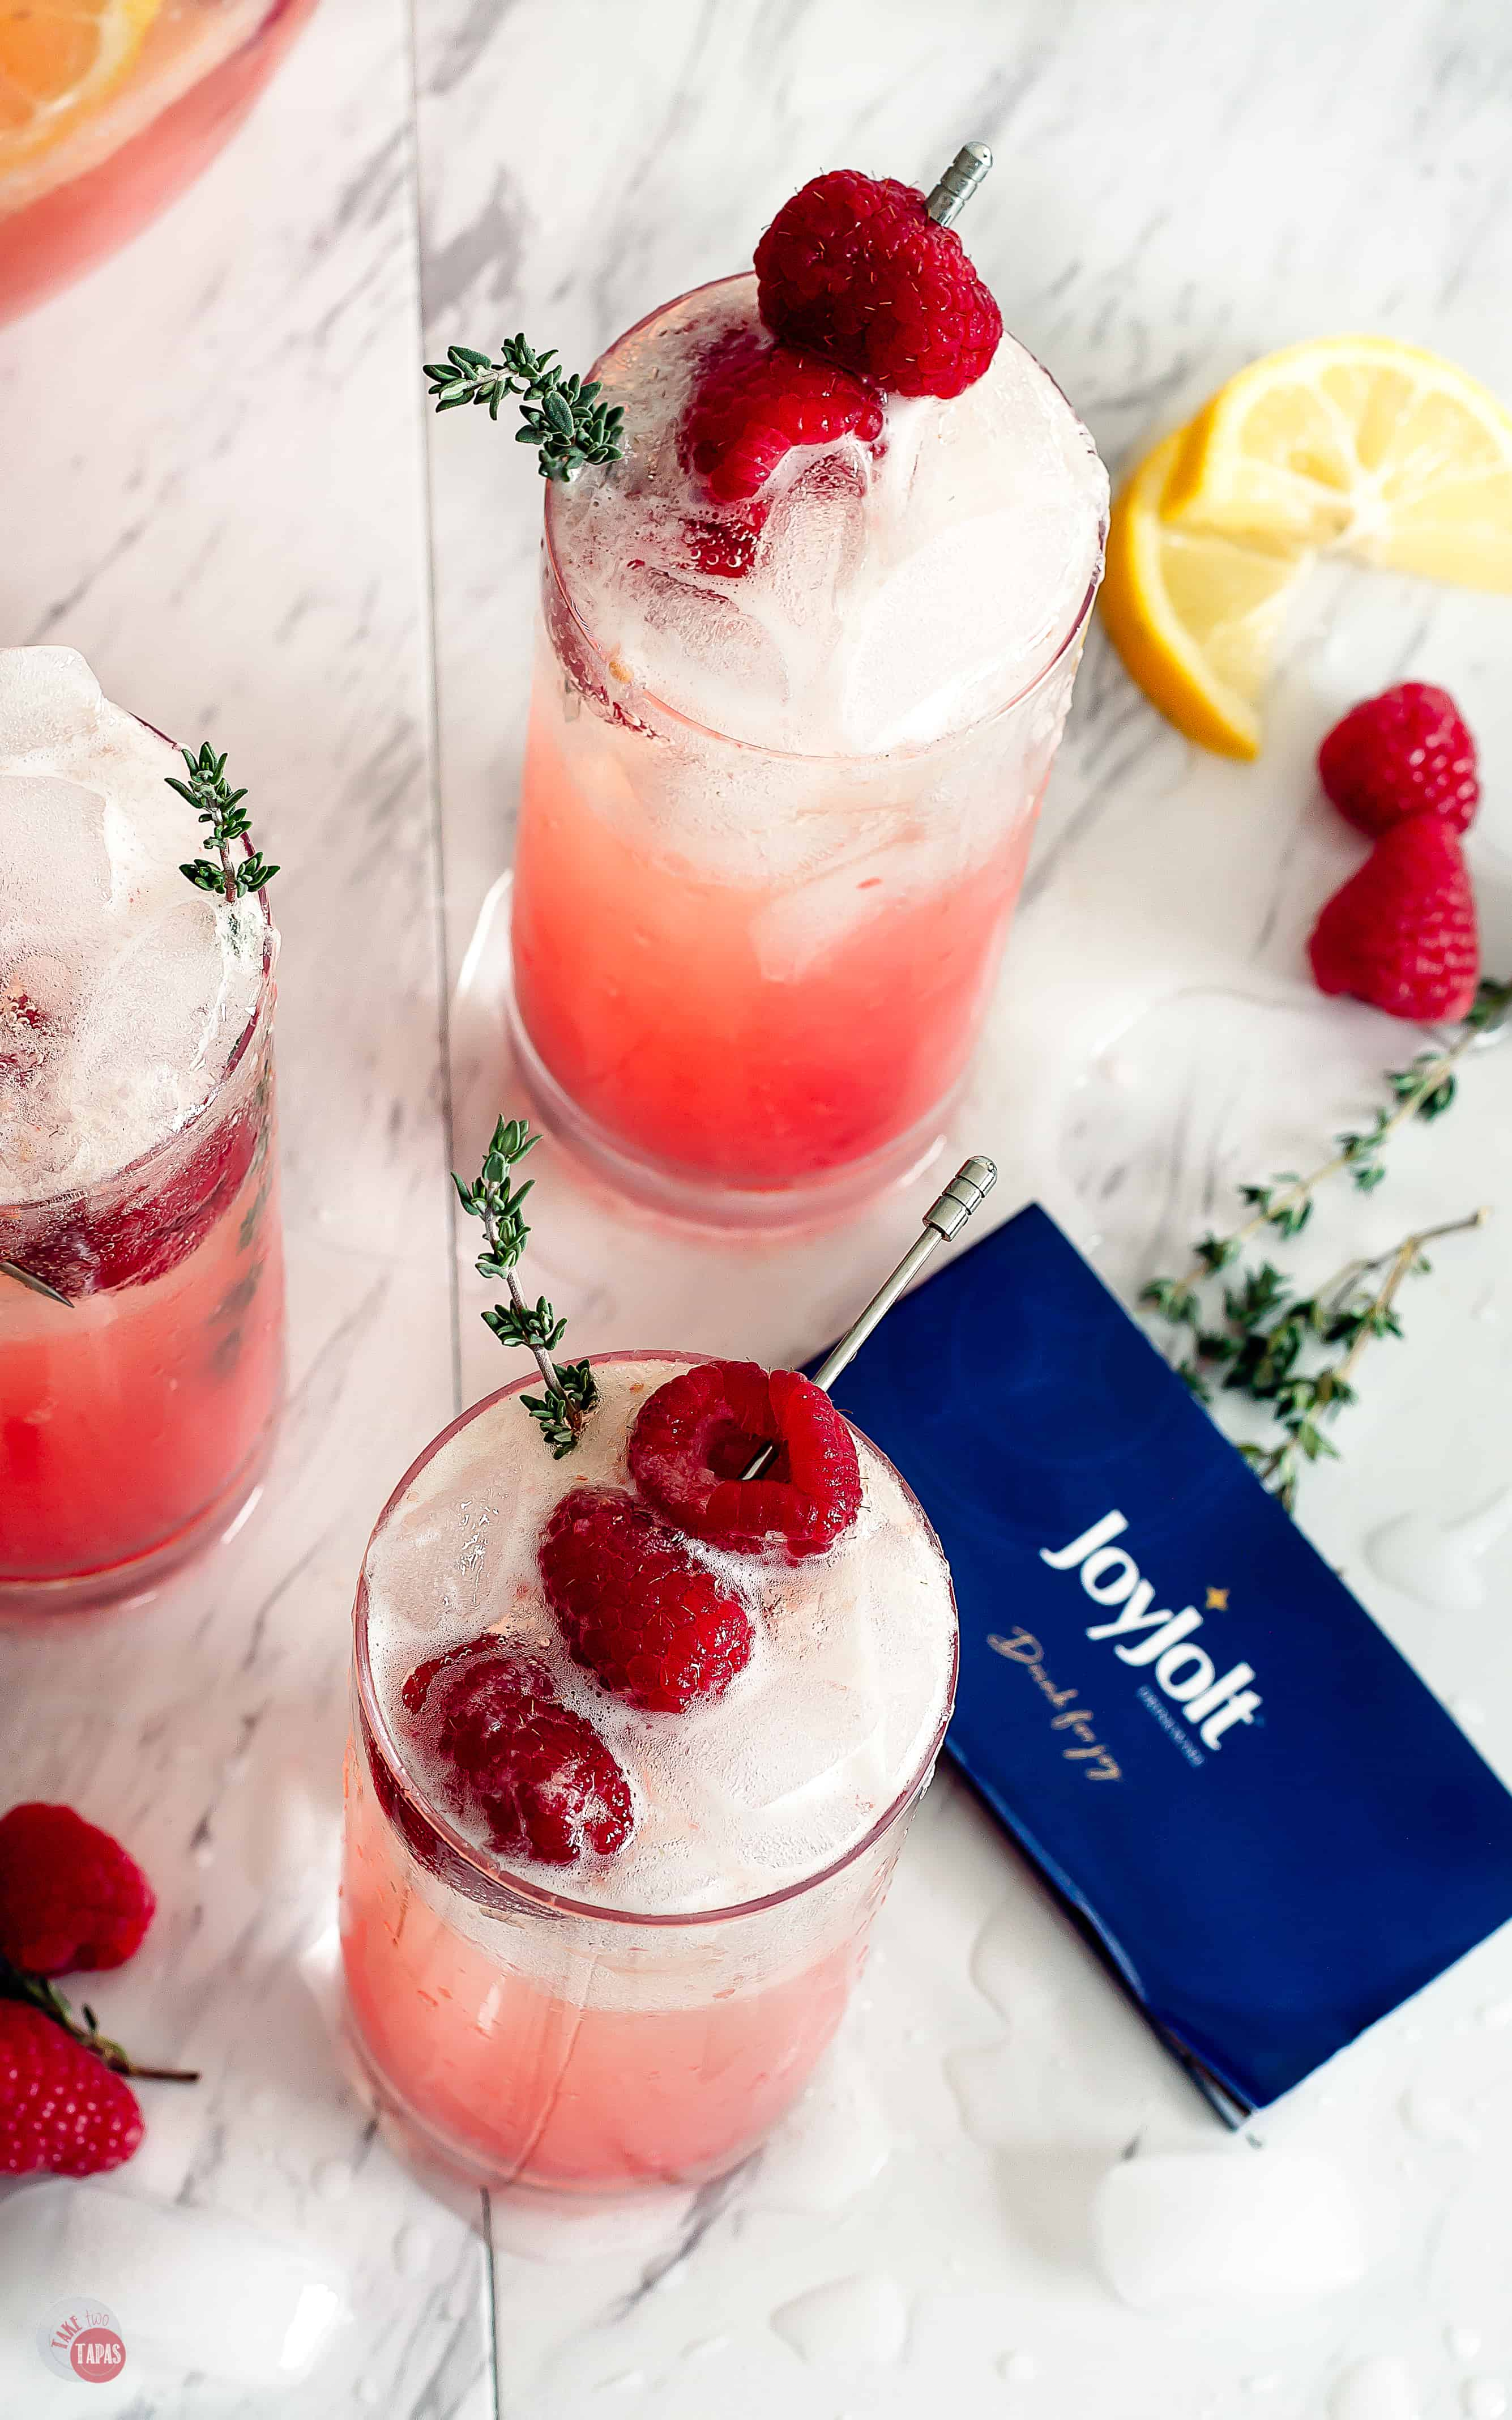 Raspberry Thyme Prosecco Punch | Take Two Tapas | #AD @JoyJolt #JoyJolt #DrinkForJoy #ChristmasSweetsWeek #PunchRecipe #ProseccoCocktail